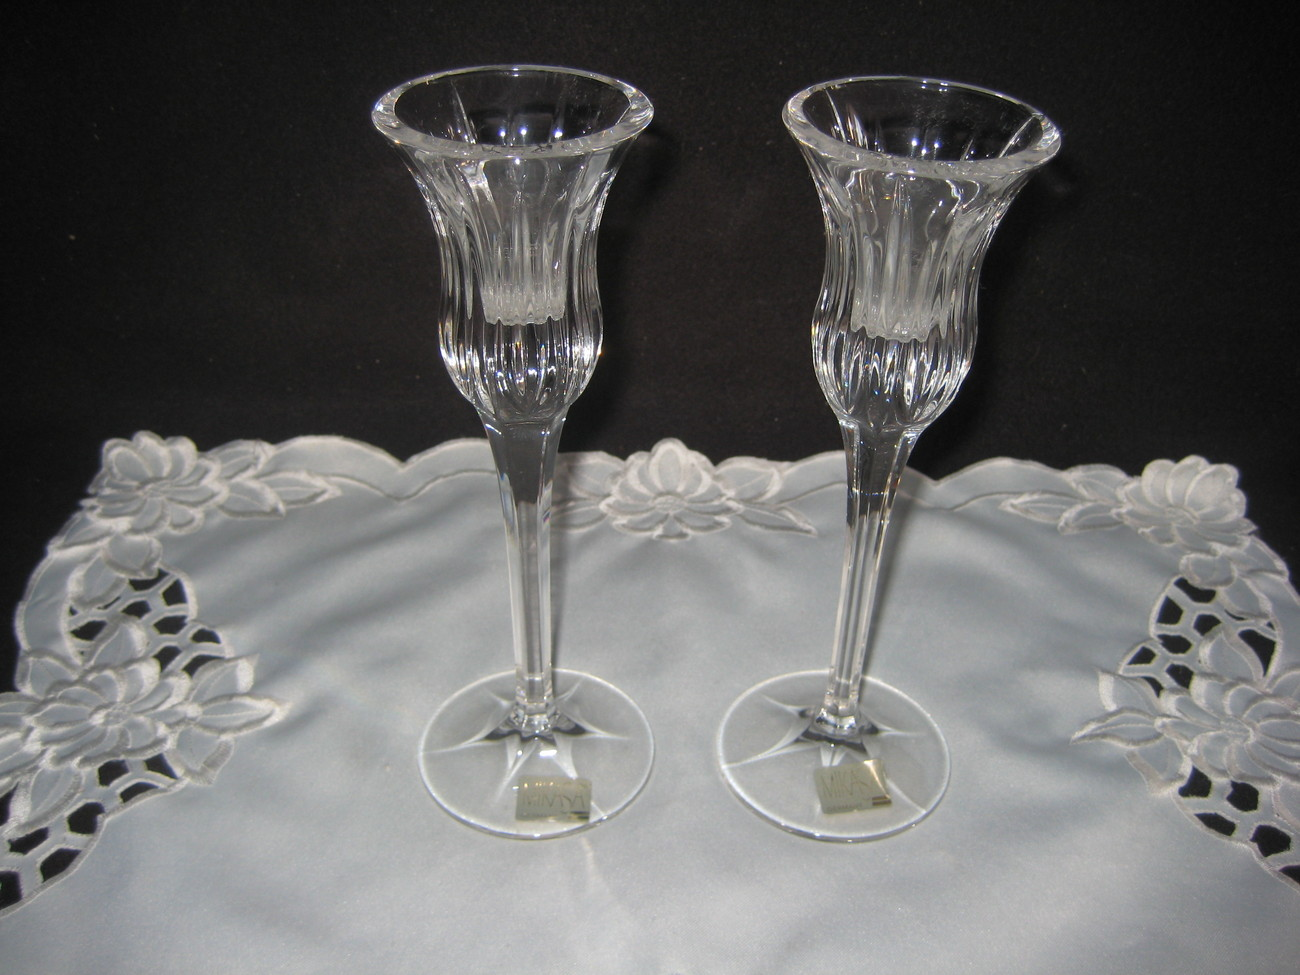 Mikasa Crystal Candlestick Holders New